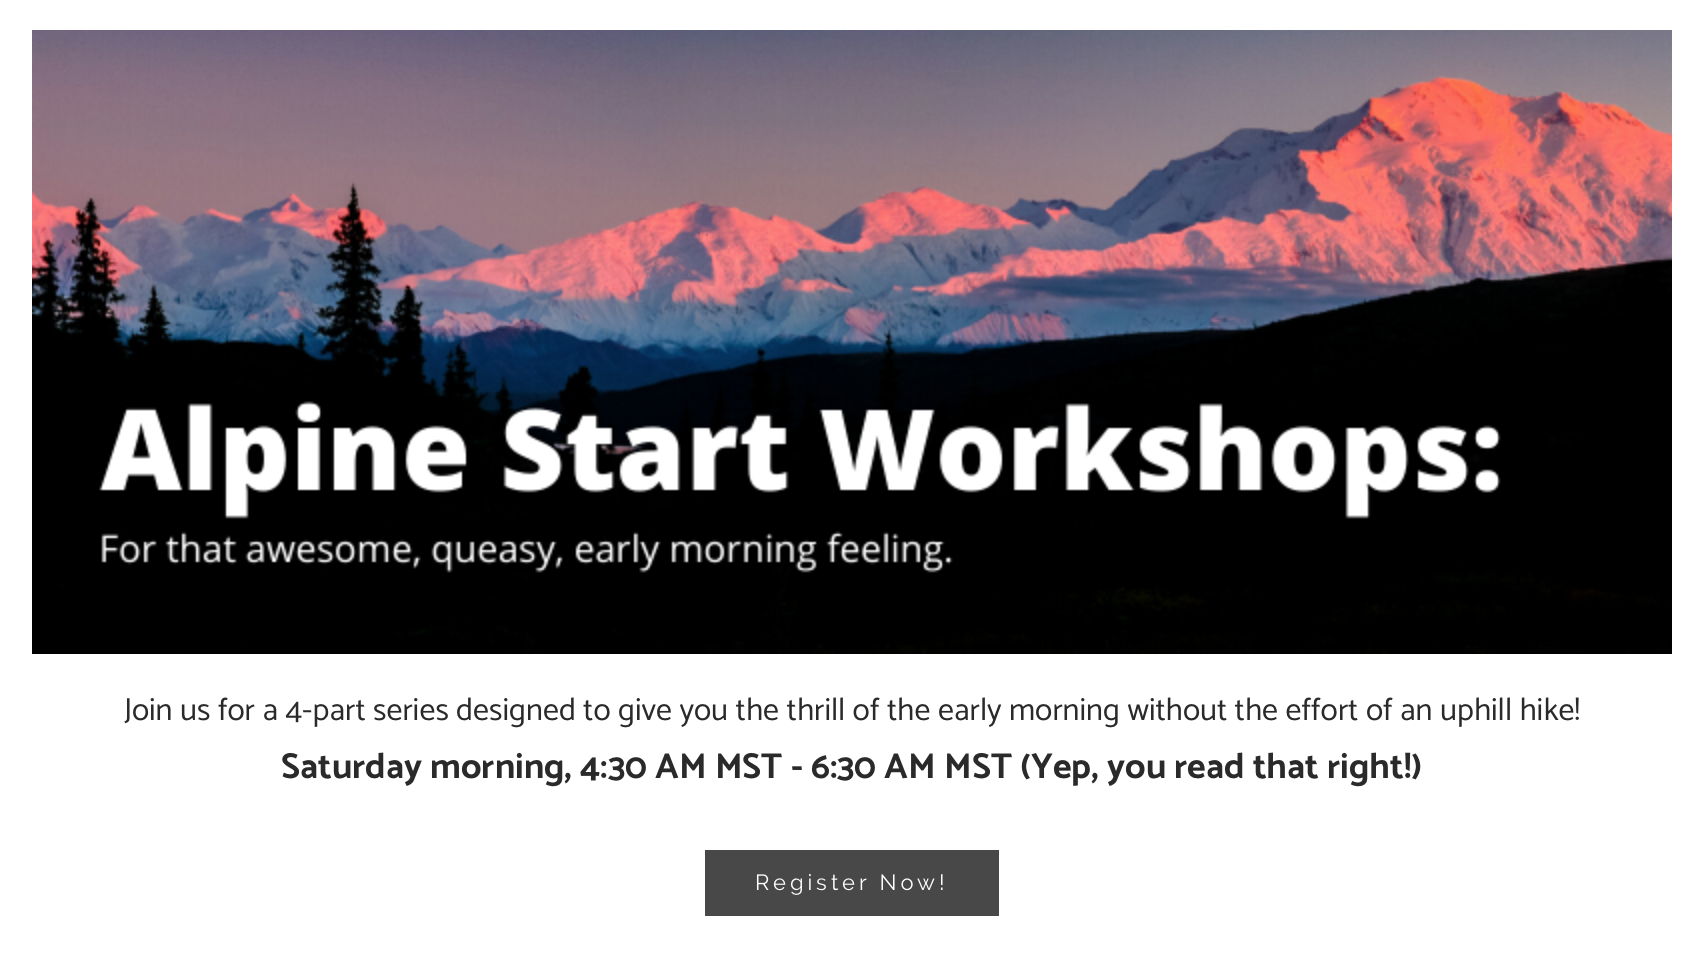 Alpine Start Workshops